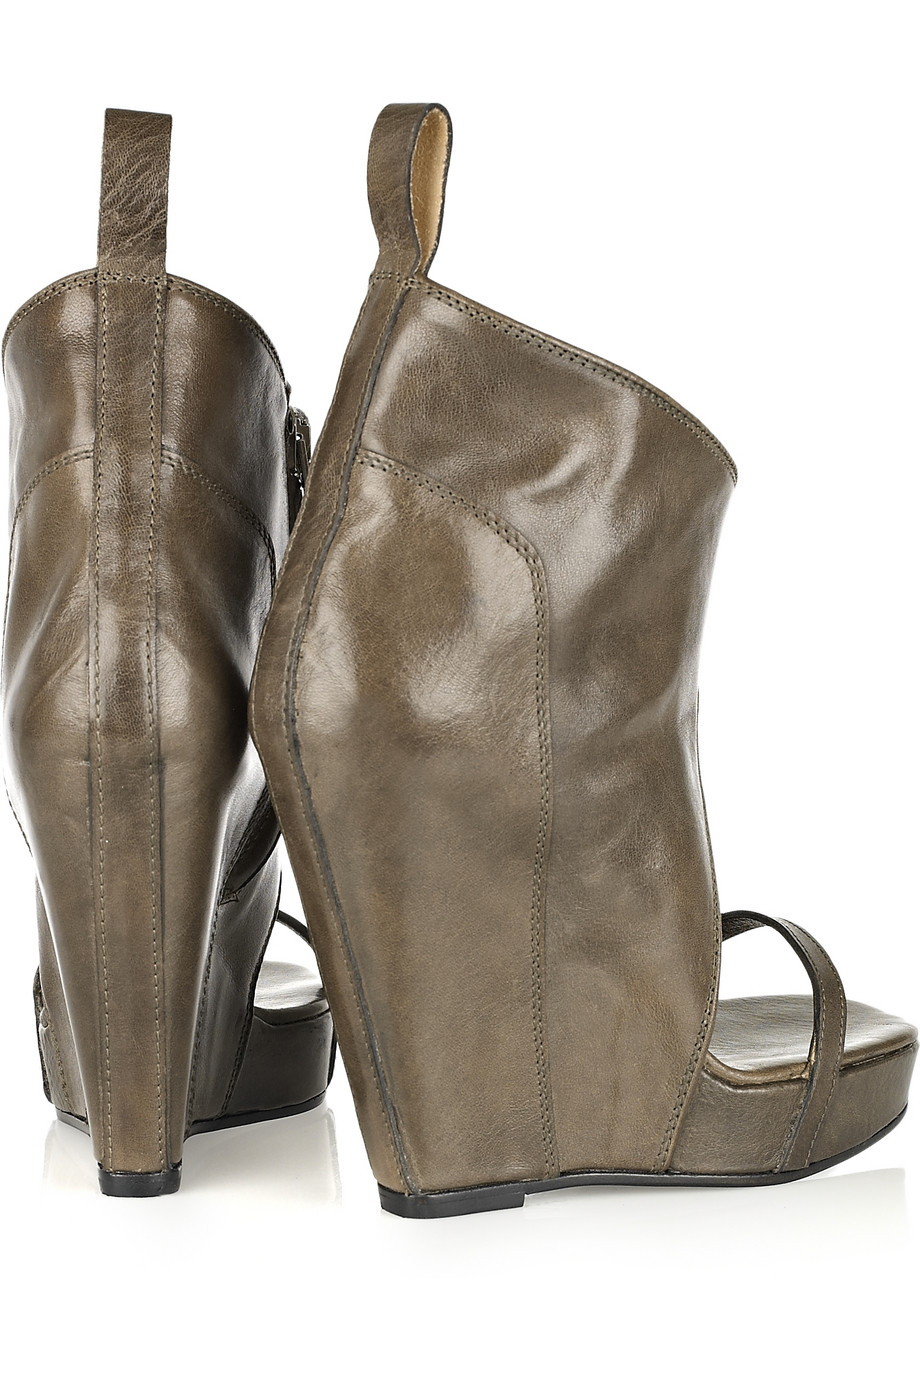 rick owens open toe wedge leather ankle boots in gray lyst